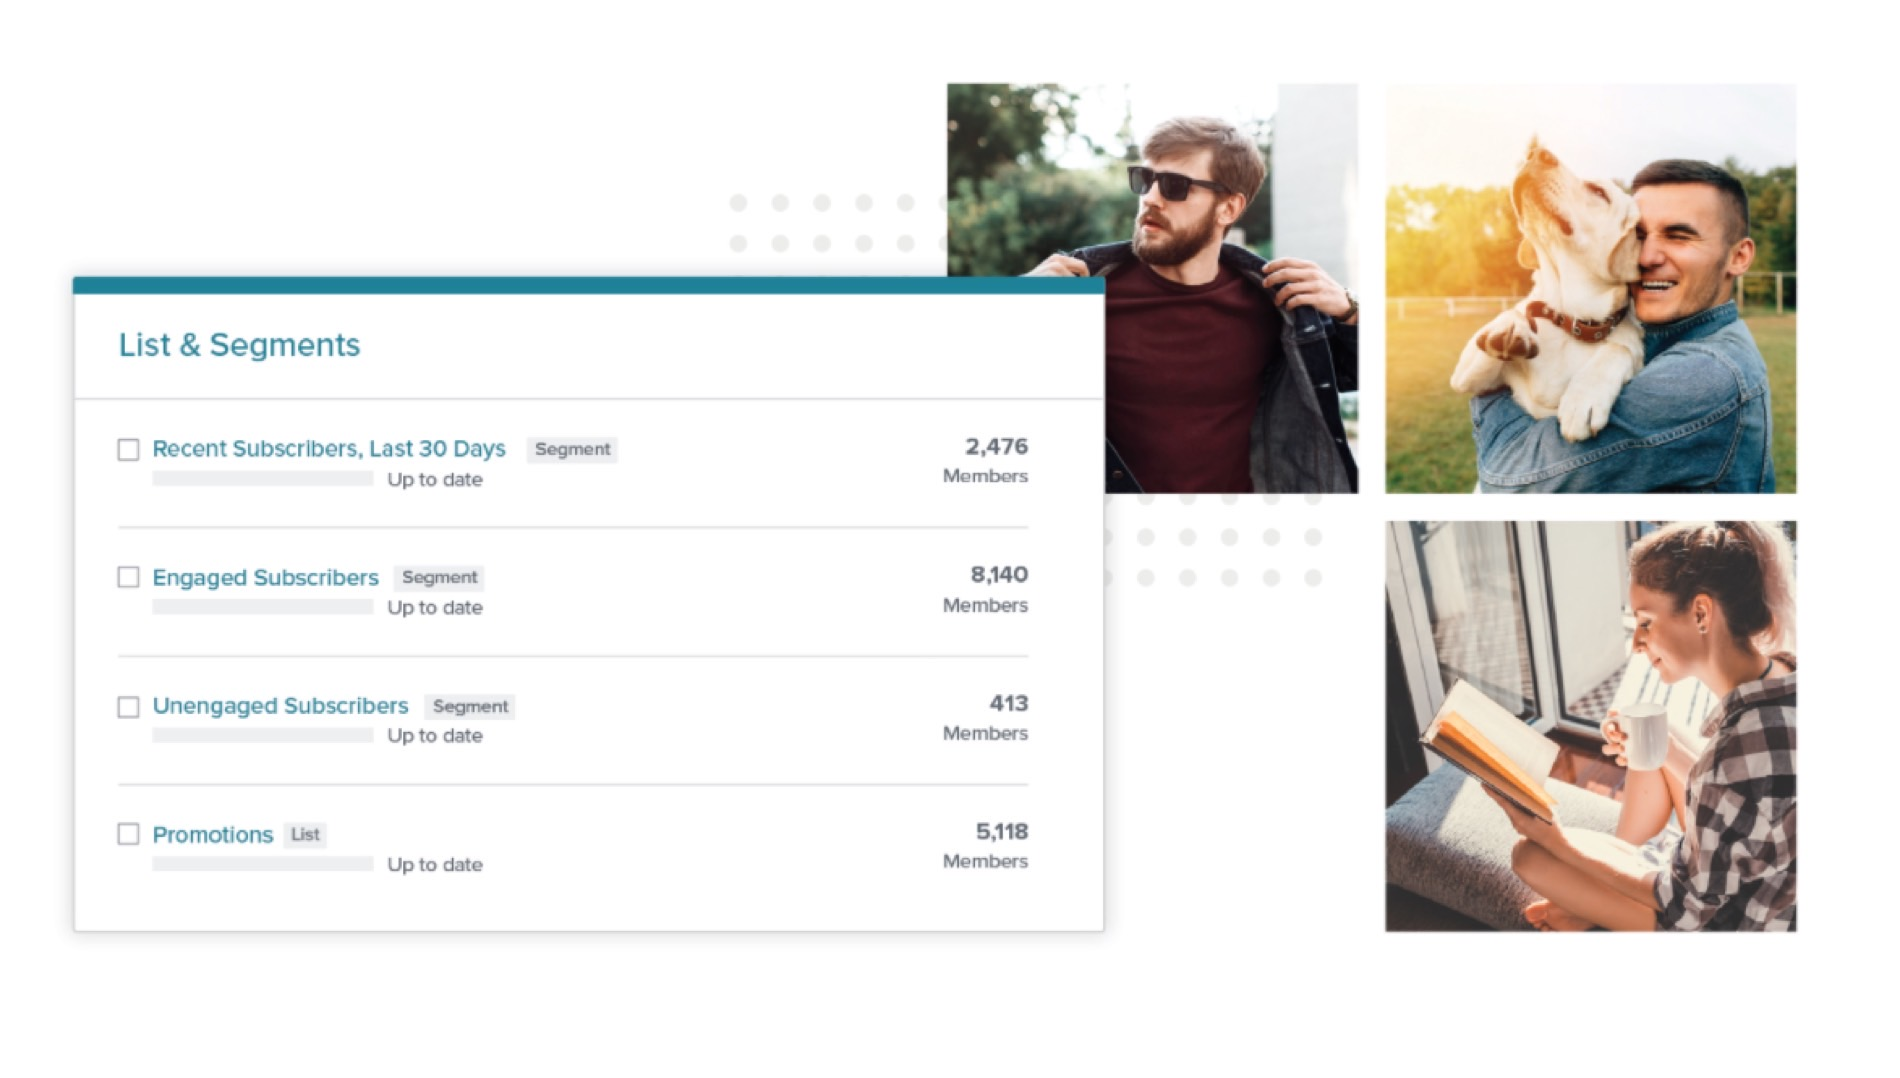 Email Marketing Segmentation Dashboard Mockup And Pictures Of Happy Customers